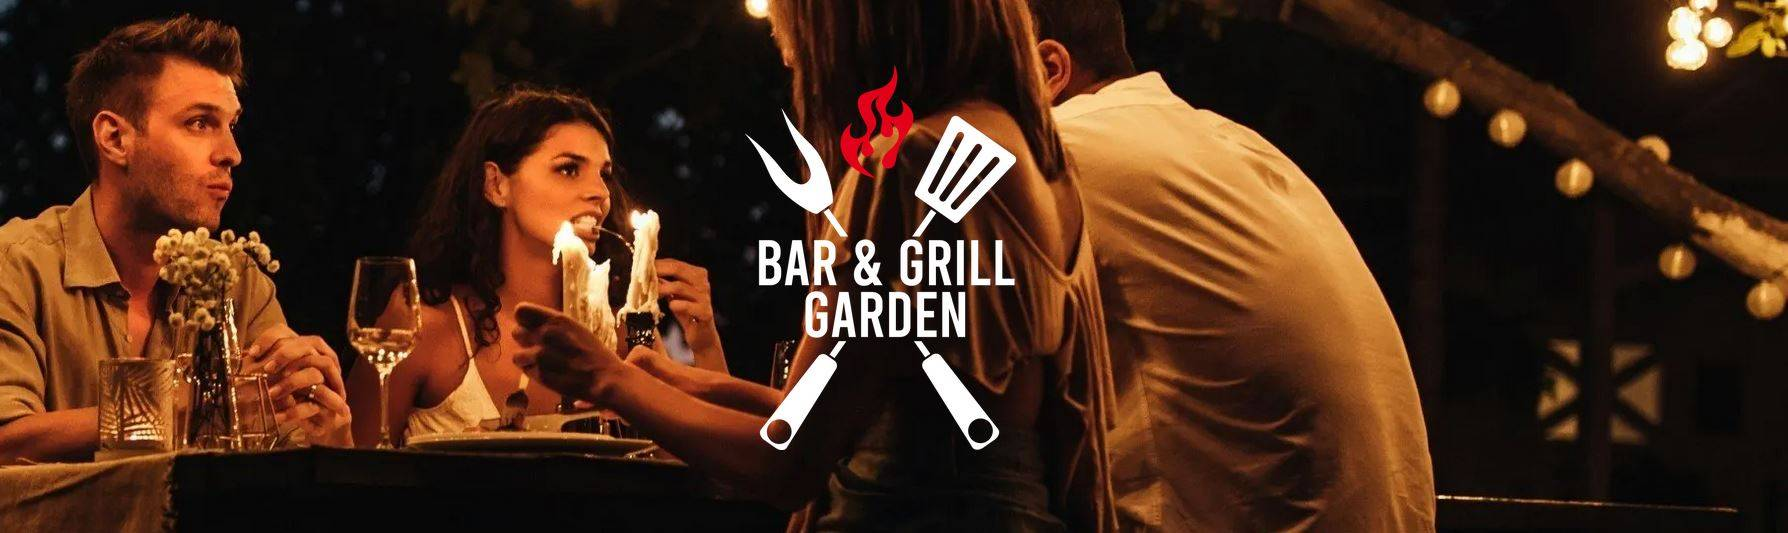 Bar & Grill Garden Zalencentrum Staring Zevenaar BBQ barbecue